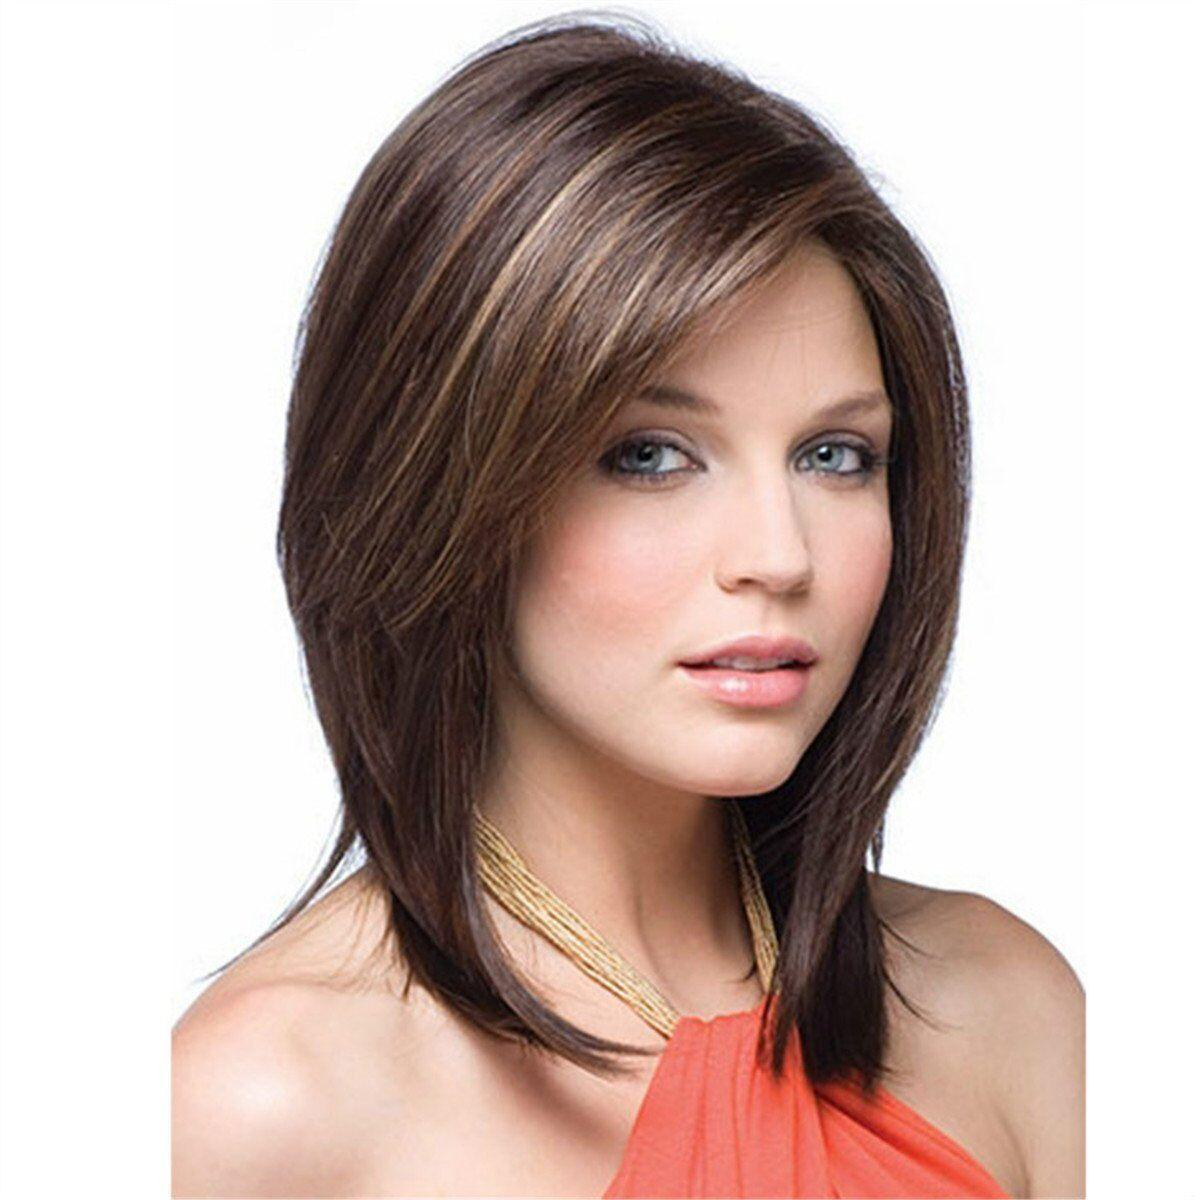 Bob Wave Shoulder Length Short Straight Fashion Women S Full Hair Wig  Straight Synthetic Bob Wig With Bangs White Wigs Short Lace Front Wigs From  ... ab6c6c68c